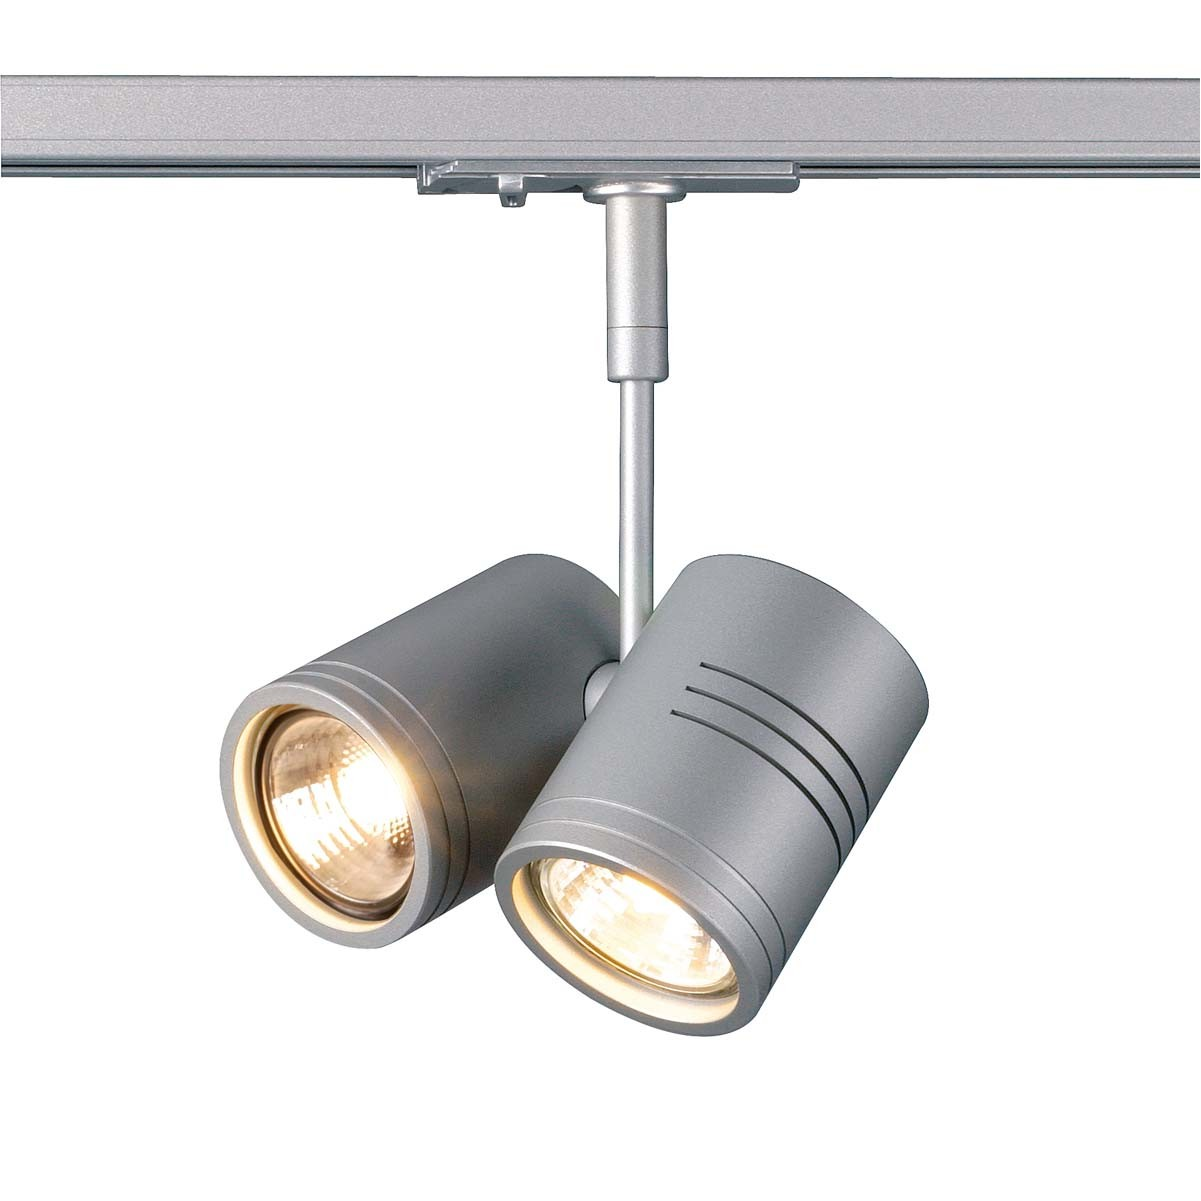 SLV 143432 Bima 2 2x50W Silver Grey 1 Circuit 240V Track Light